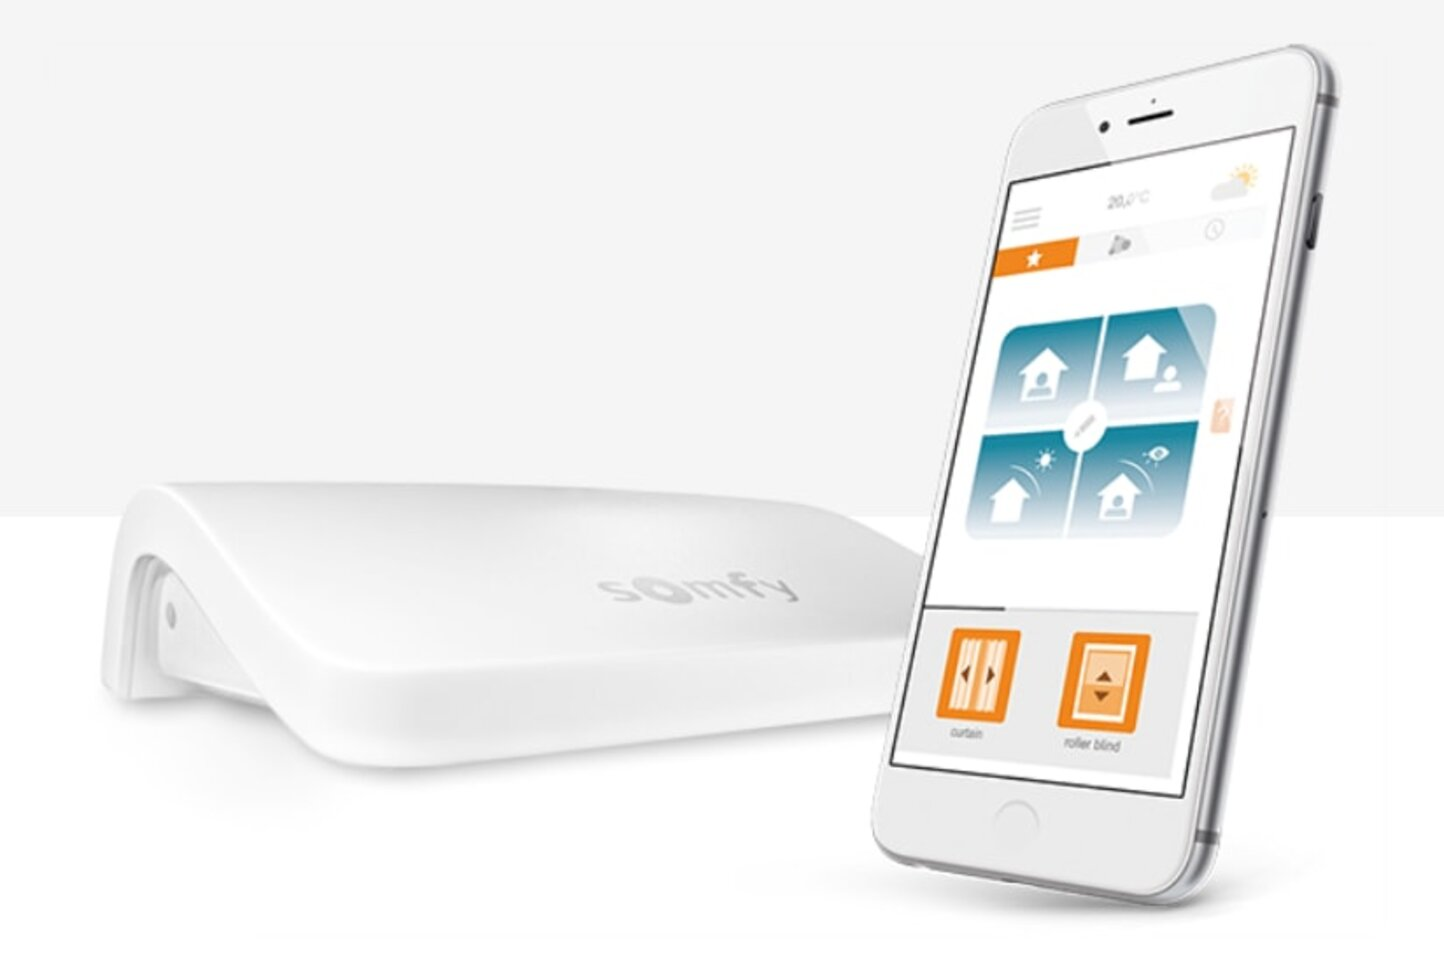 Somfy Connexoon - Mobile App Control